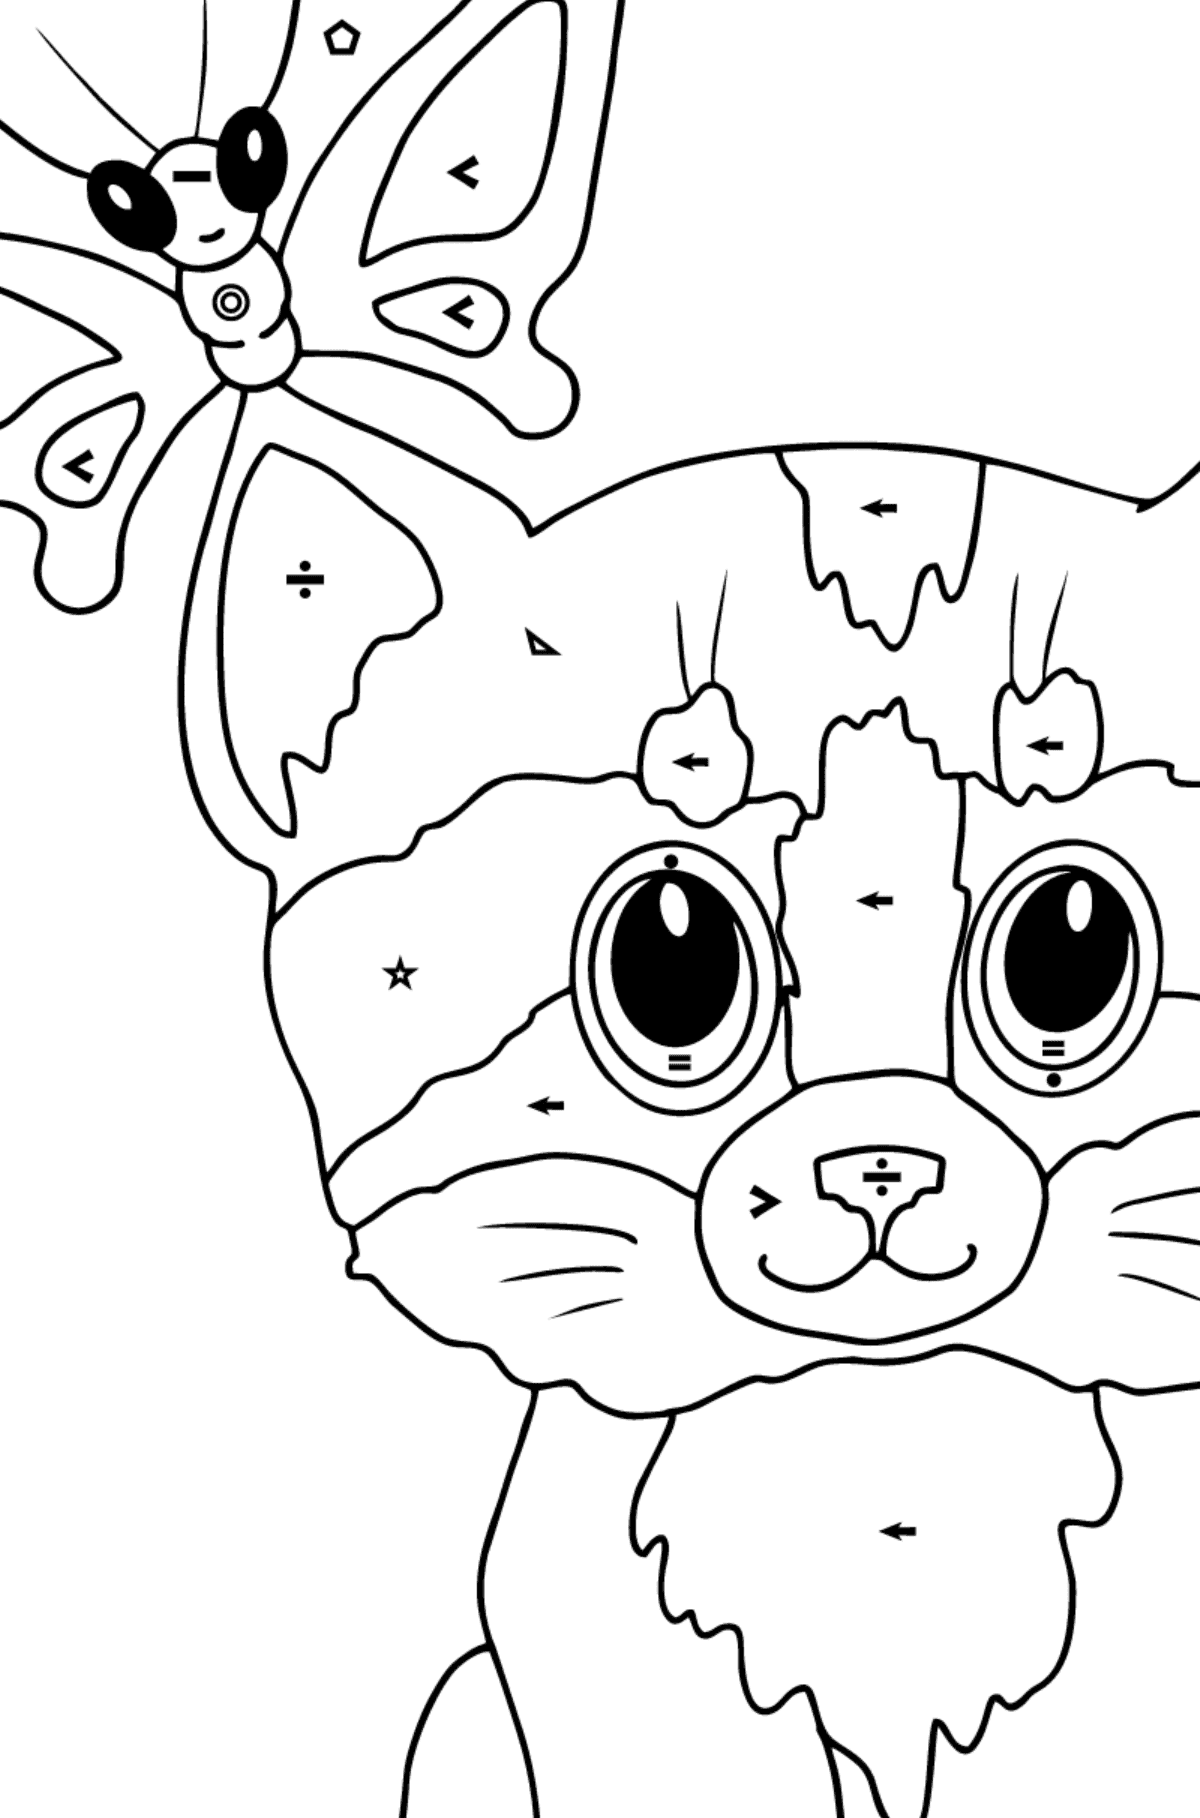 Coloring Page - A Cat with a Butterfly on Its Ear - Coloring by Symbols and Geometric Shapes for Children